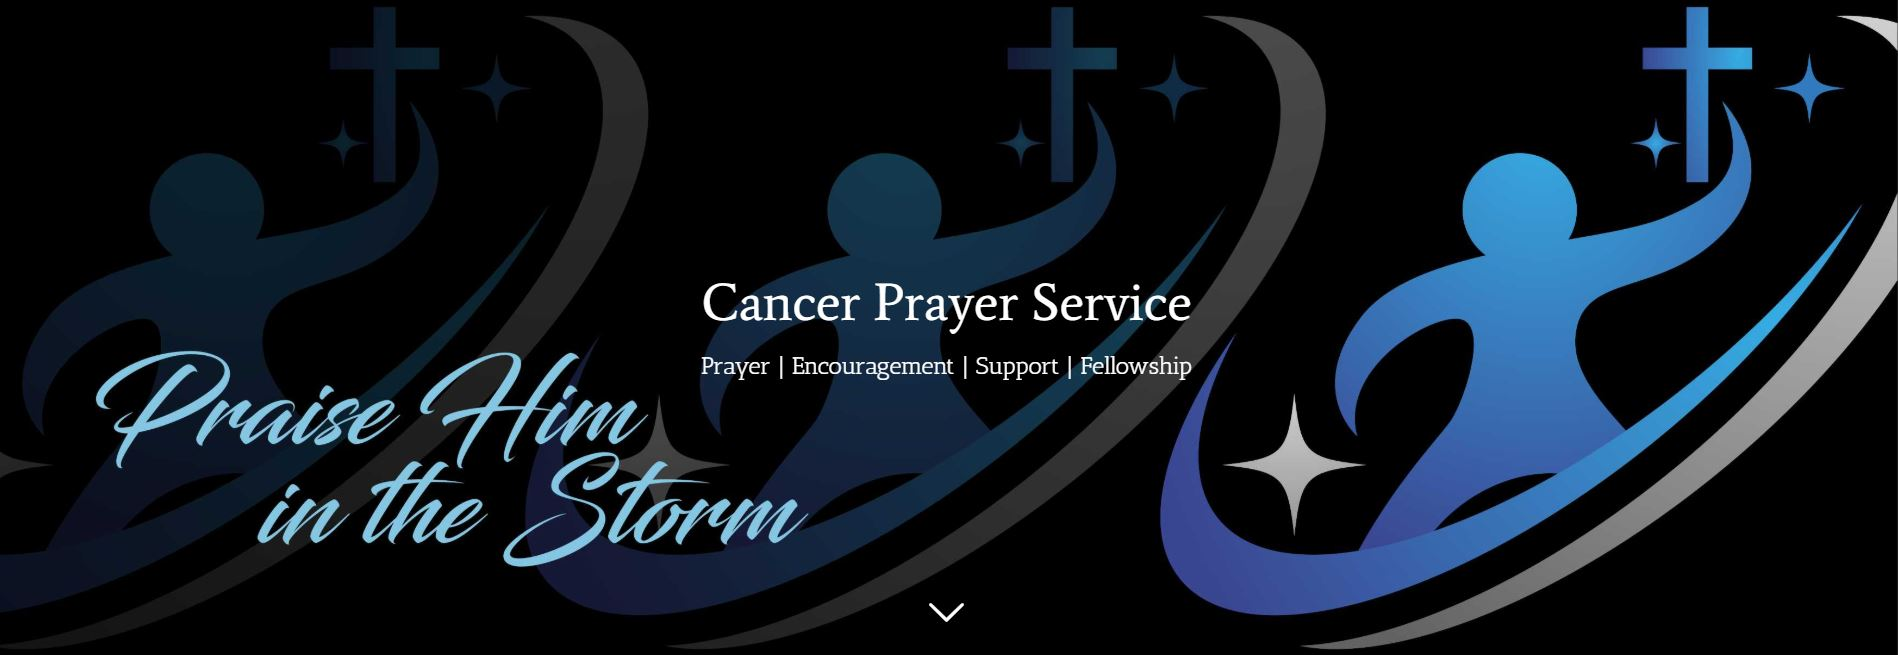 Cancer-Prayer-Service-Mobile-Header